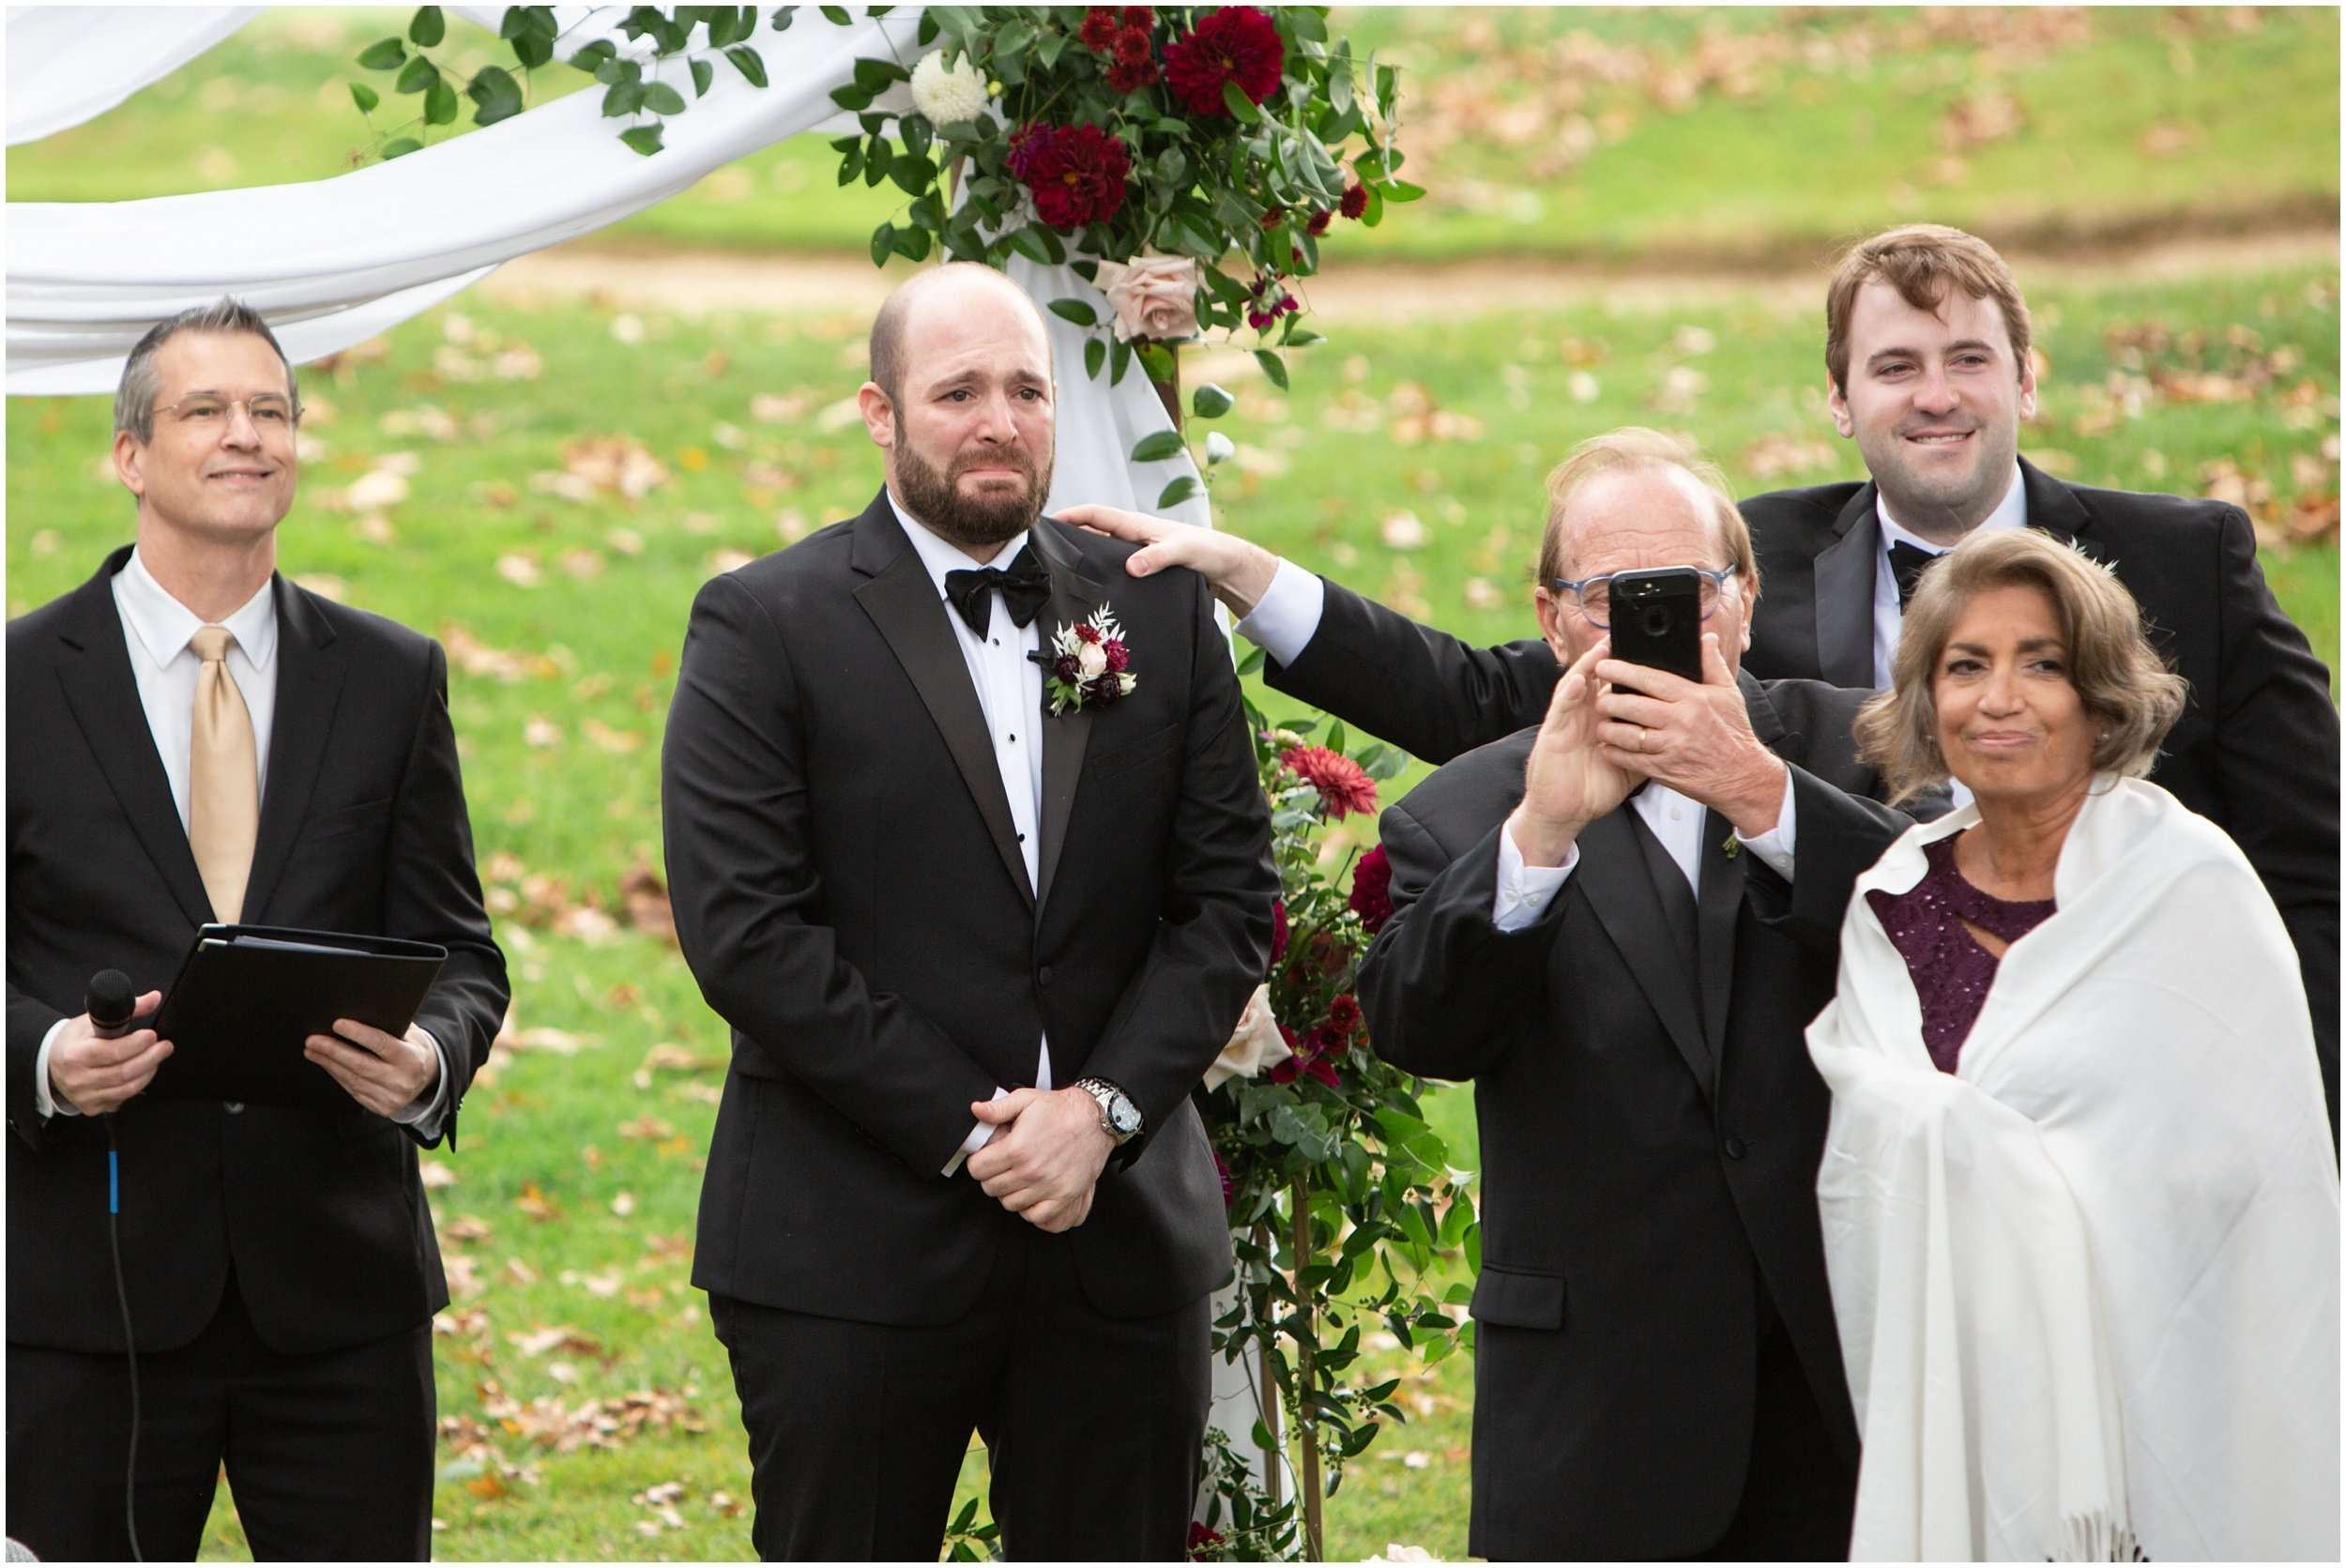 Fall Wedding at the Jefferson Golf and Country Club | Ohio Wedding Photography 134